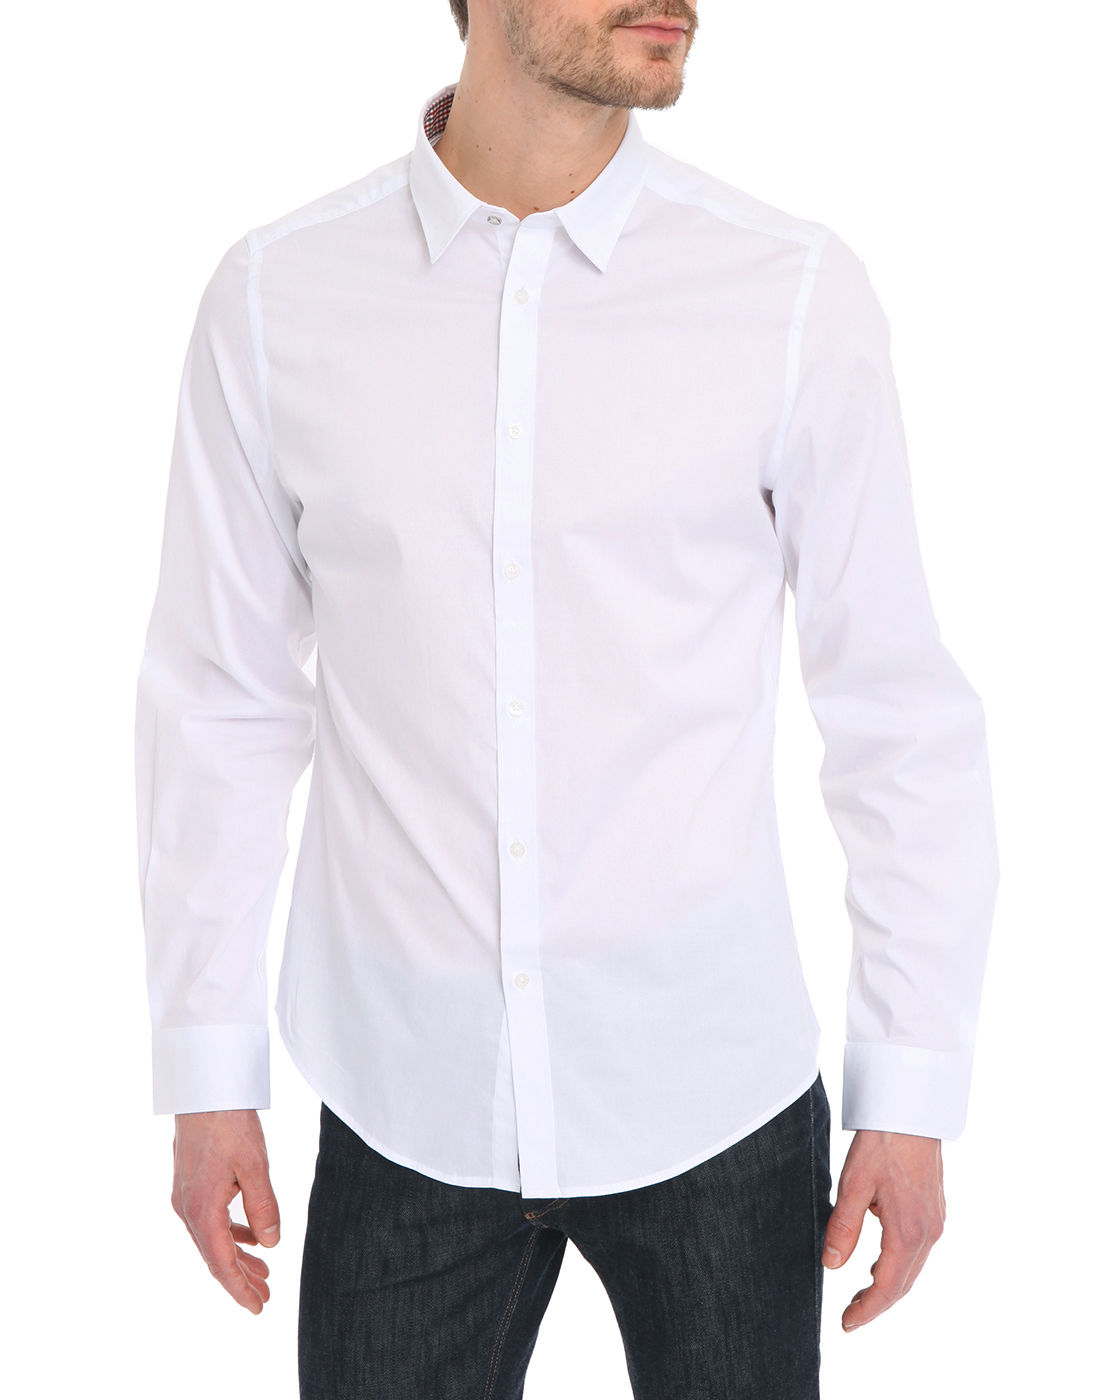 Enjoy free shipping and easy returns every day at Kohl's. Find great deals on Mens White Stretch Dress Shirts Slim Tops at Kohl's today!